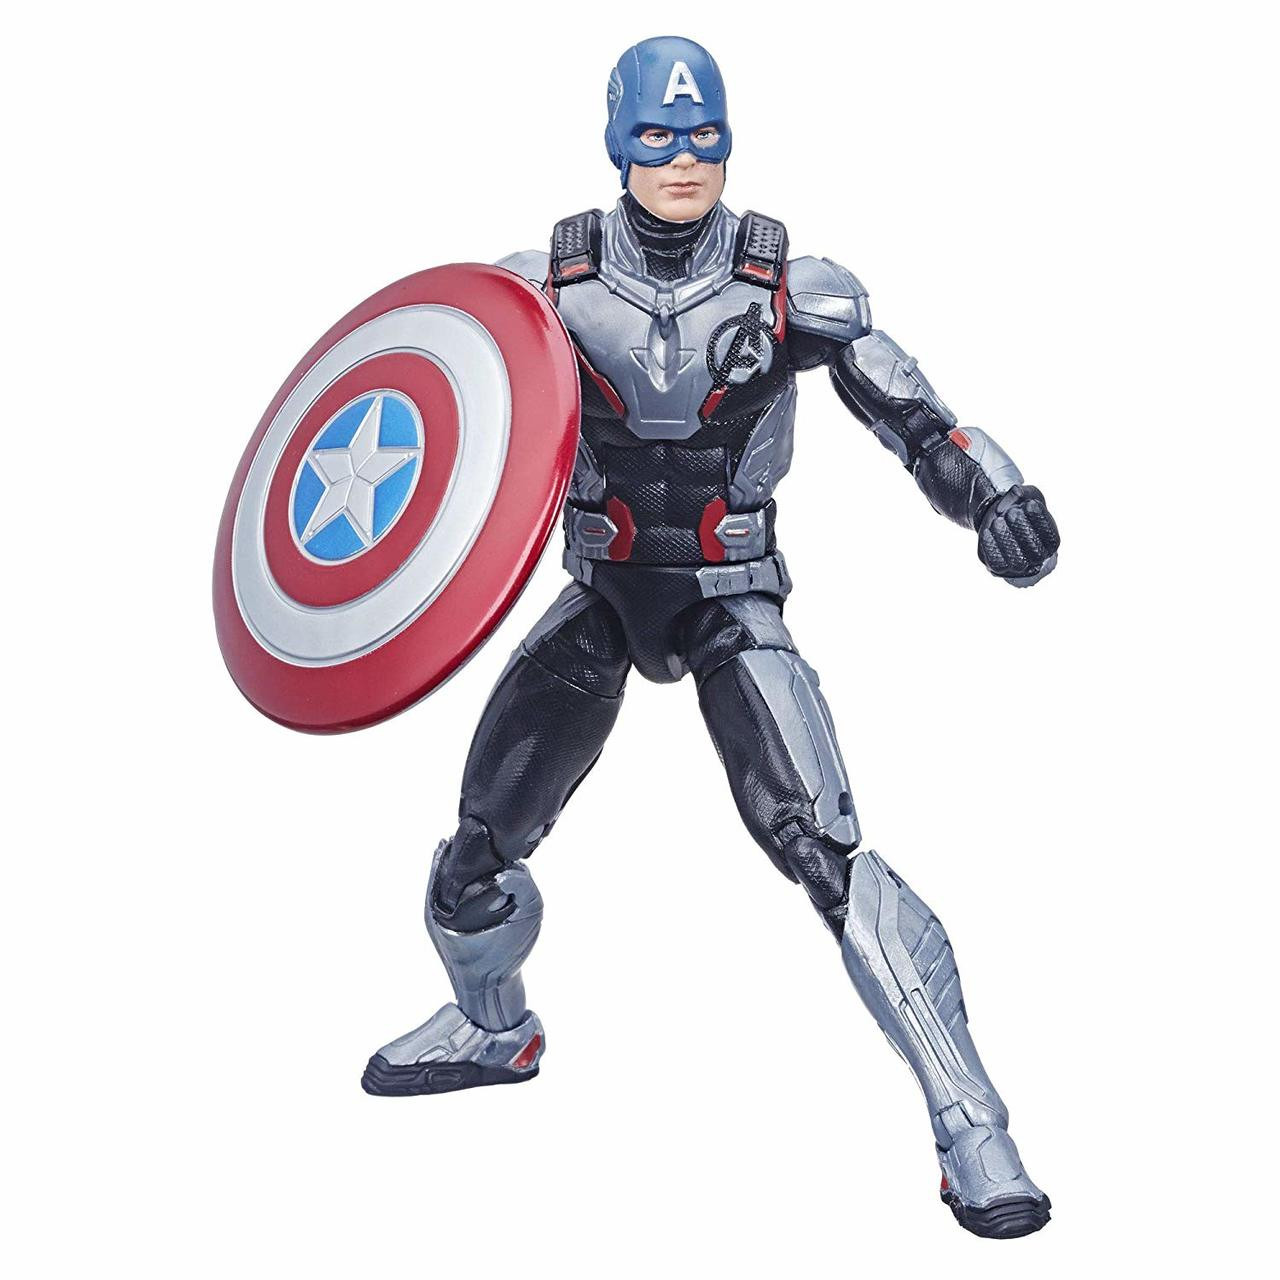 Ultimate Marvel Legends Captain America 6-Inch Action Figure with Motorcycle